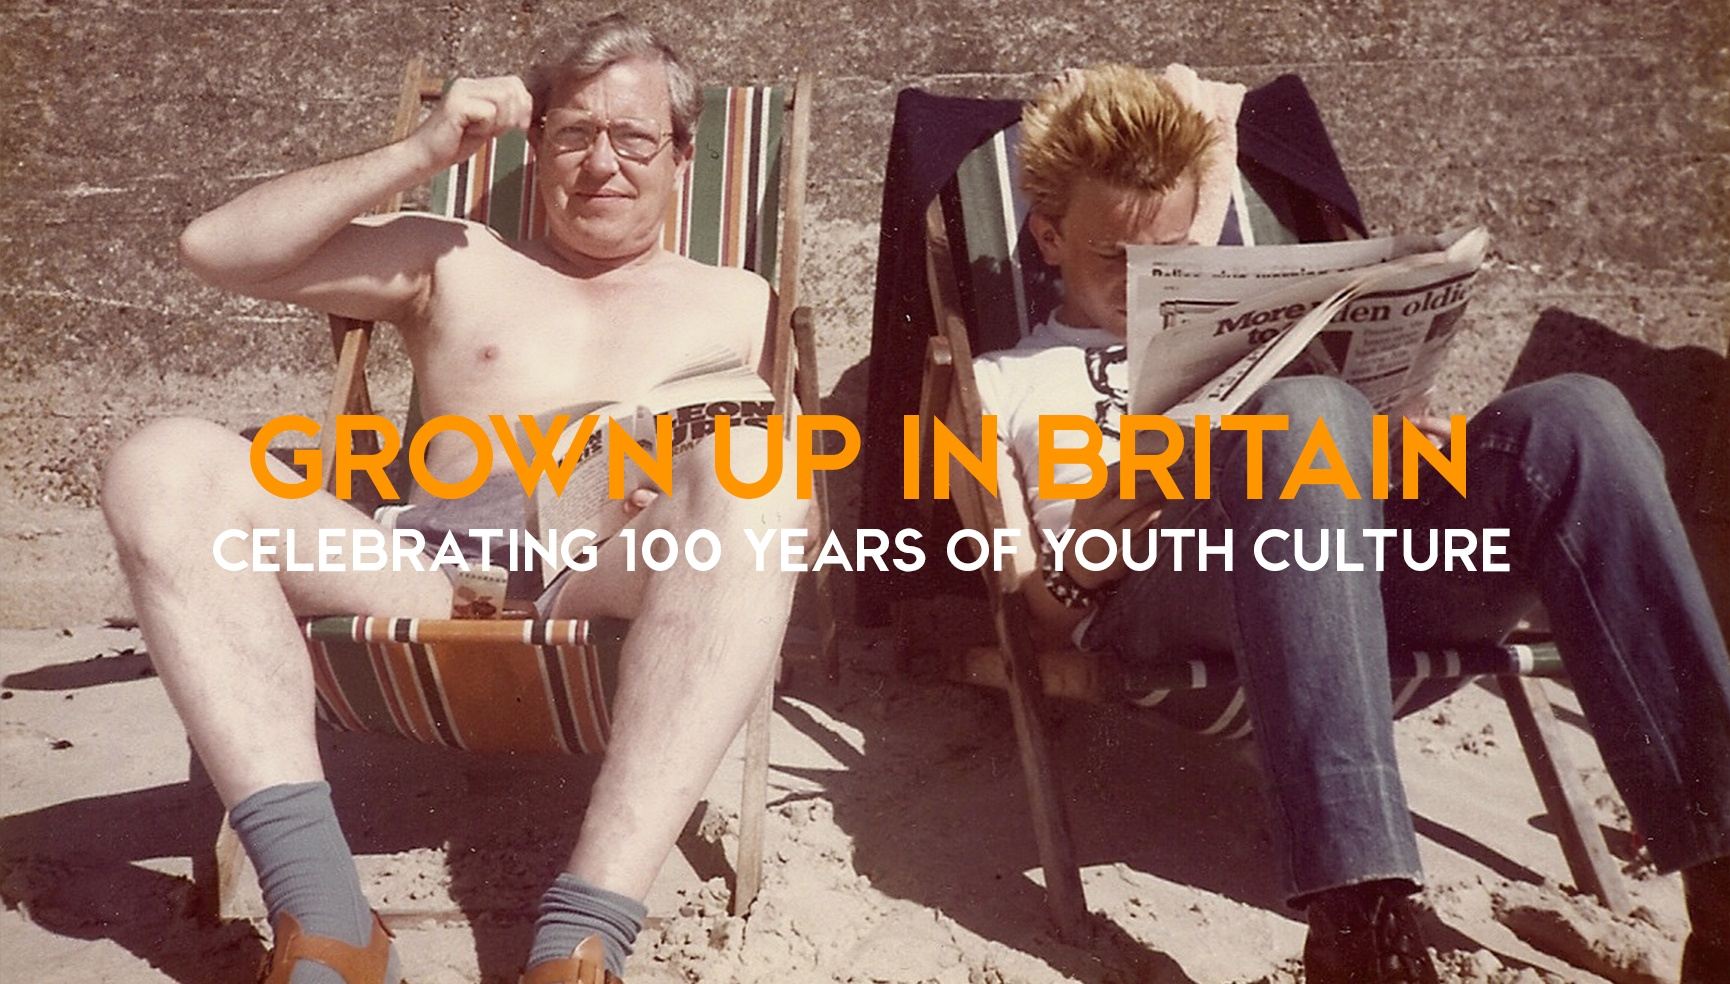 Grown Up In Britain: Celebrating 100 Years of Youth Culture from Mods and Rockers, to Punk, Hip Hop, Hippies, Rave and Grime